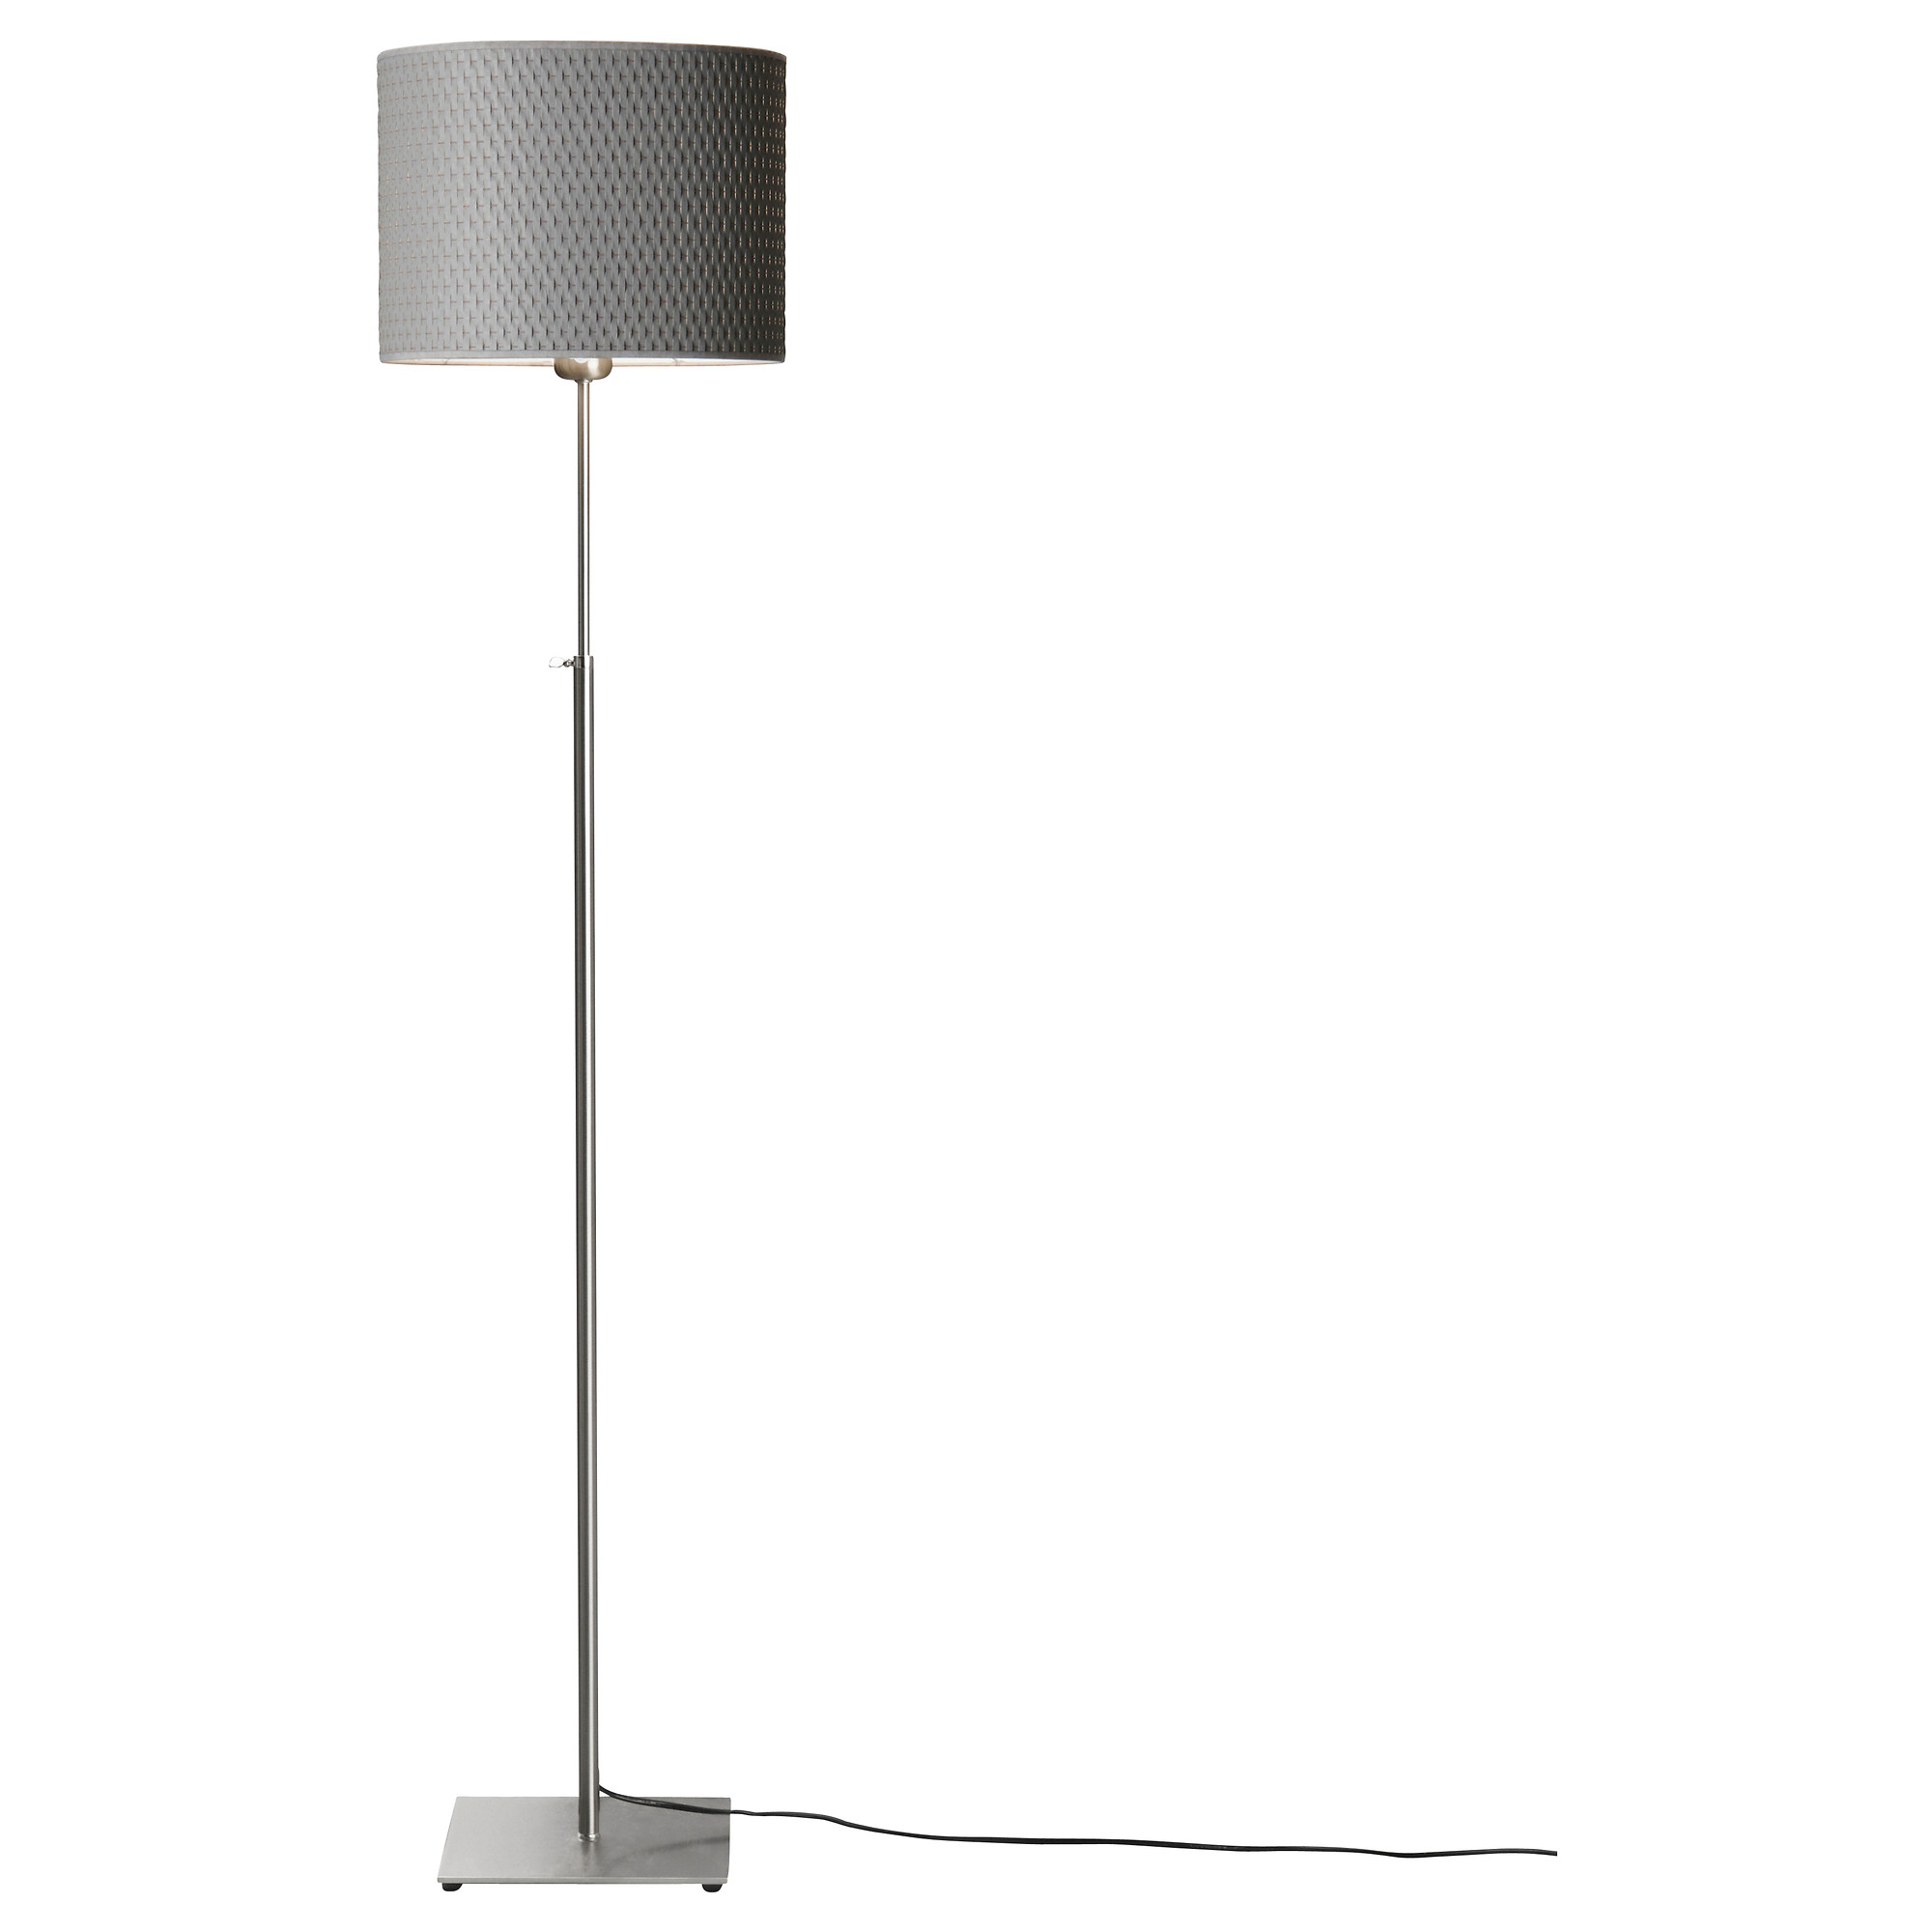 10 facts about stand up lamps warisan lighting. Black Bedroom Furniture Sets. Home Design Ideas